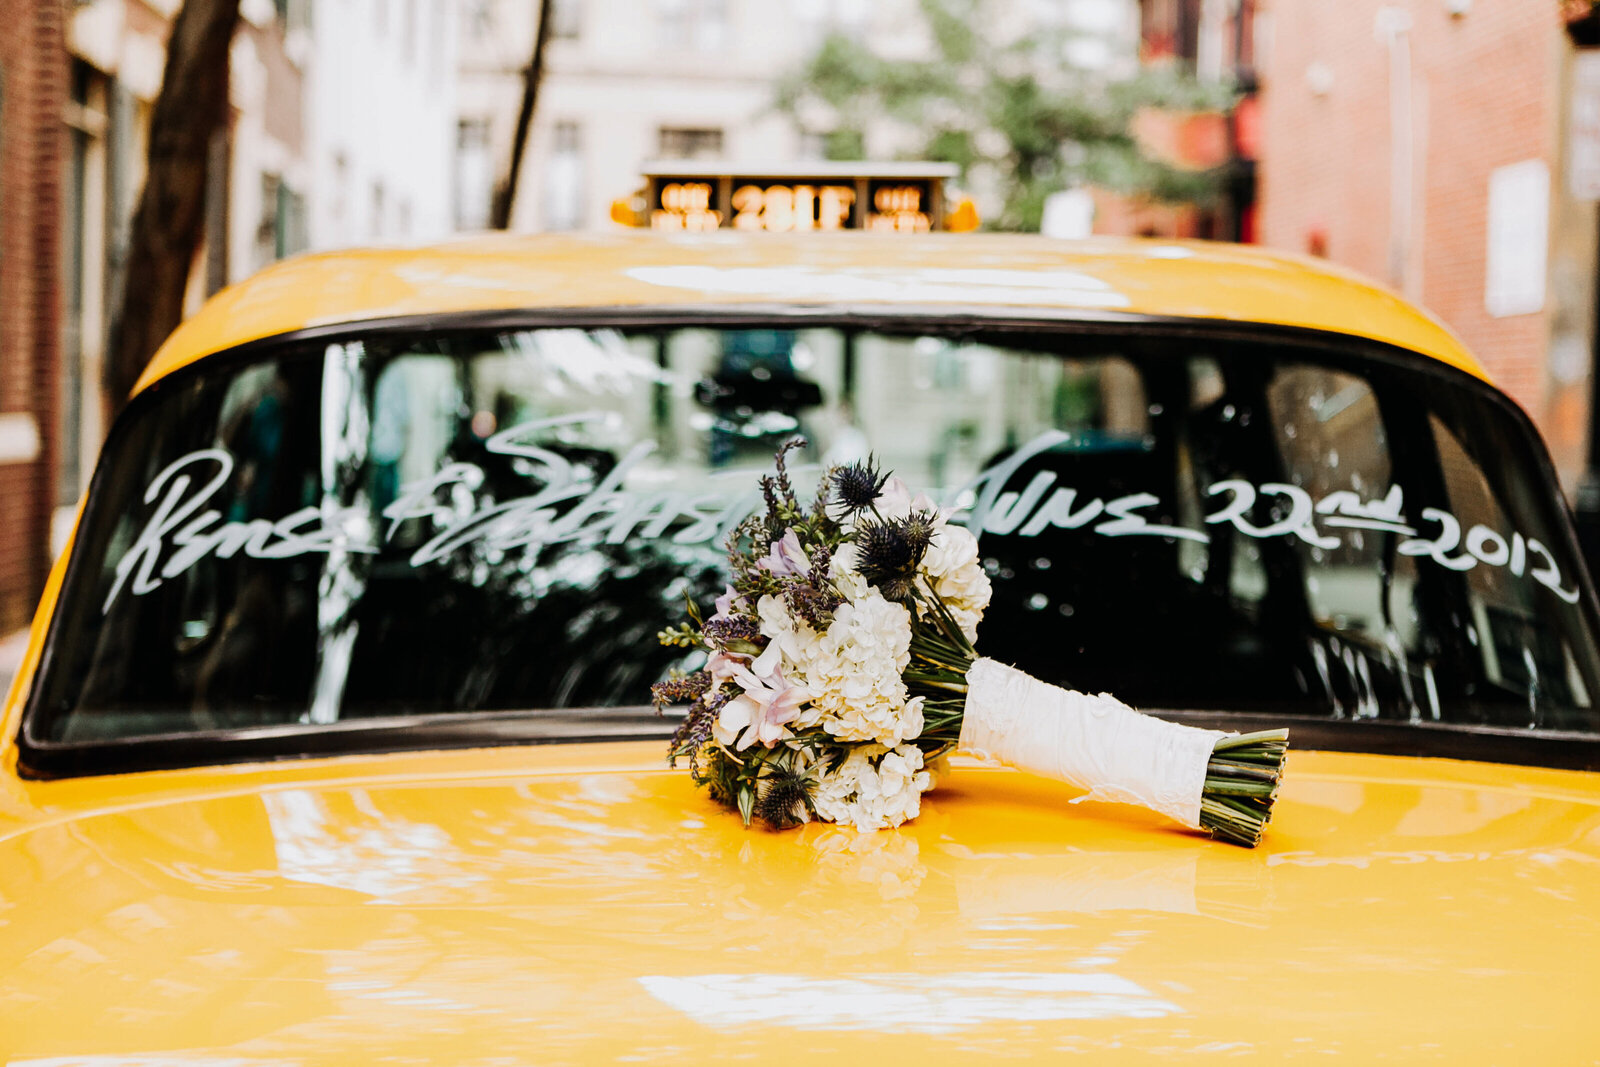 bridal bouquet on yellow taxi cab